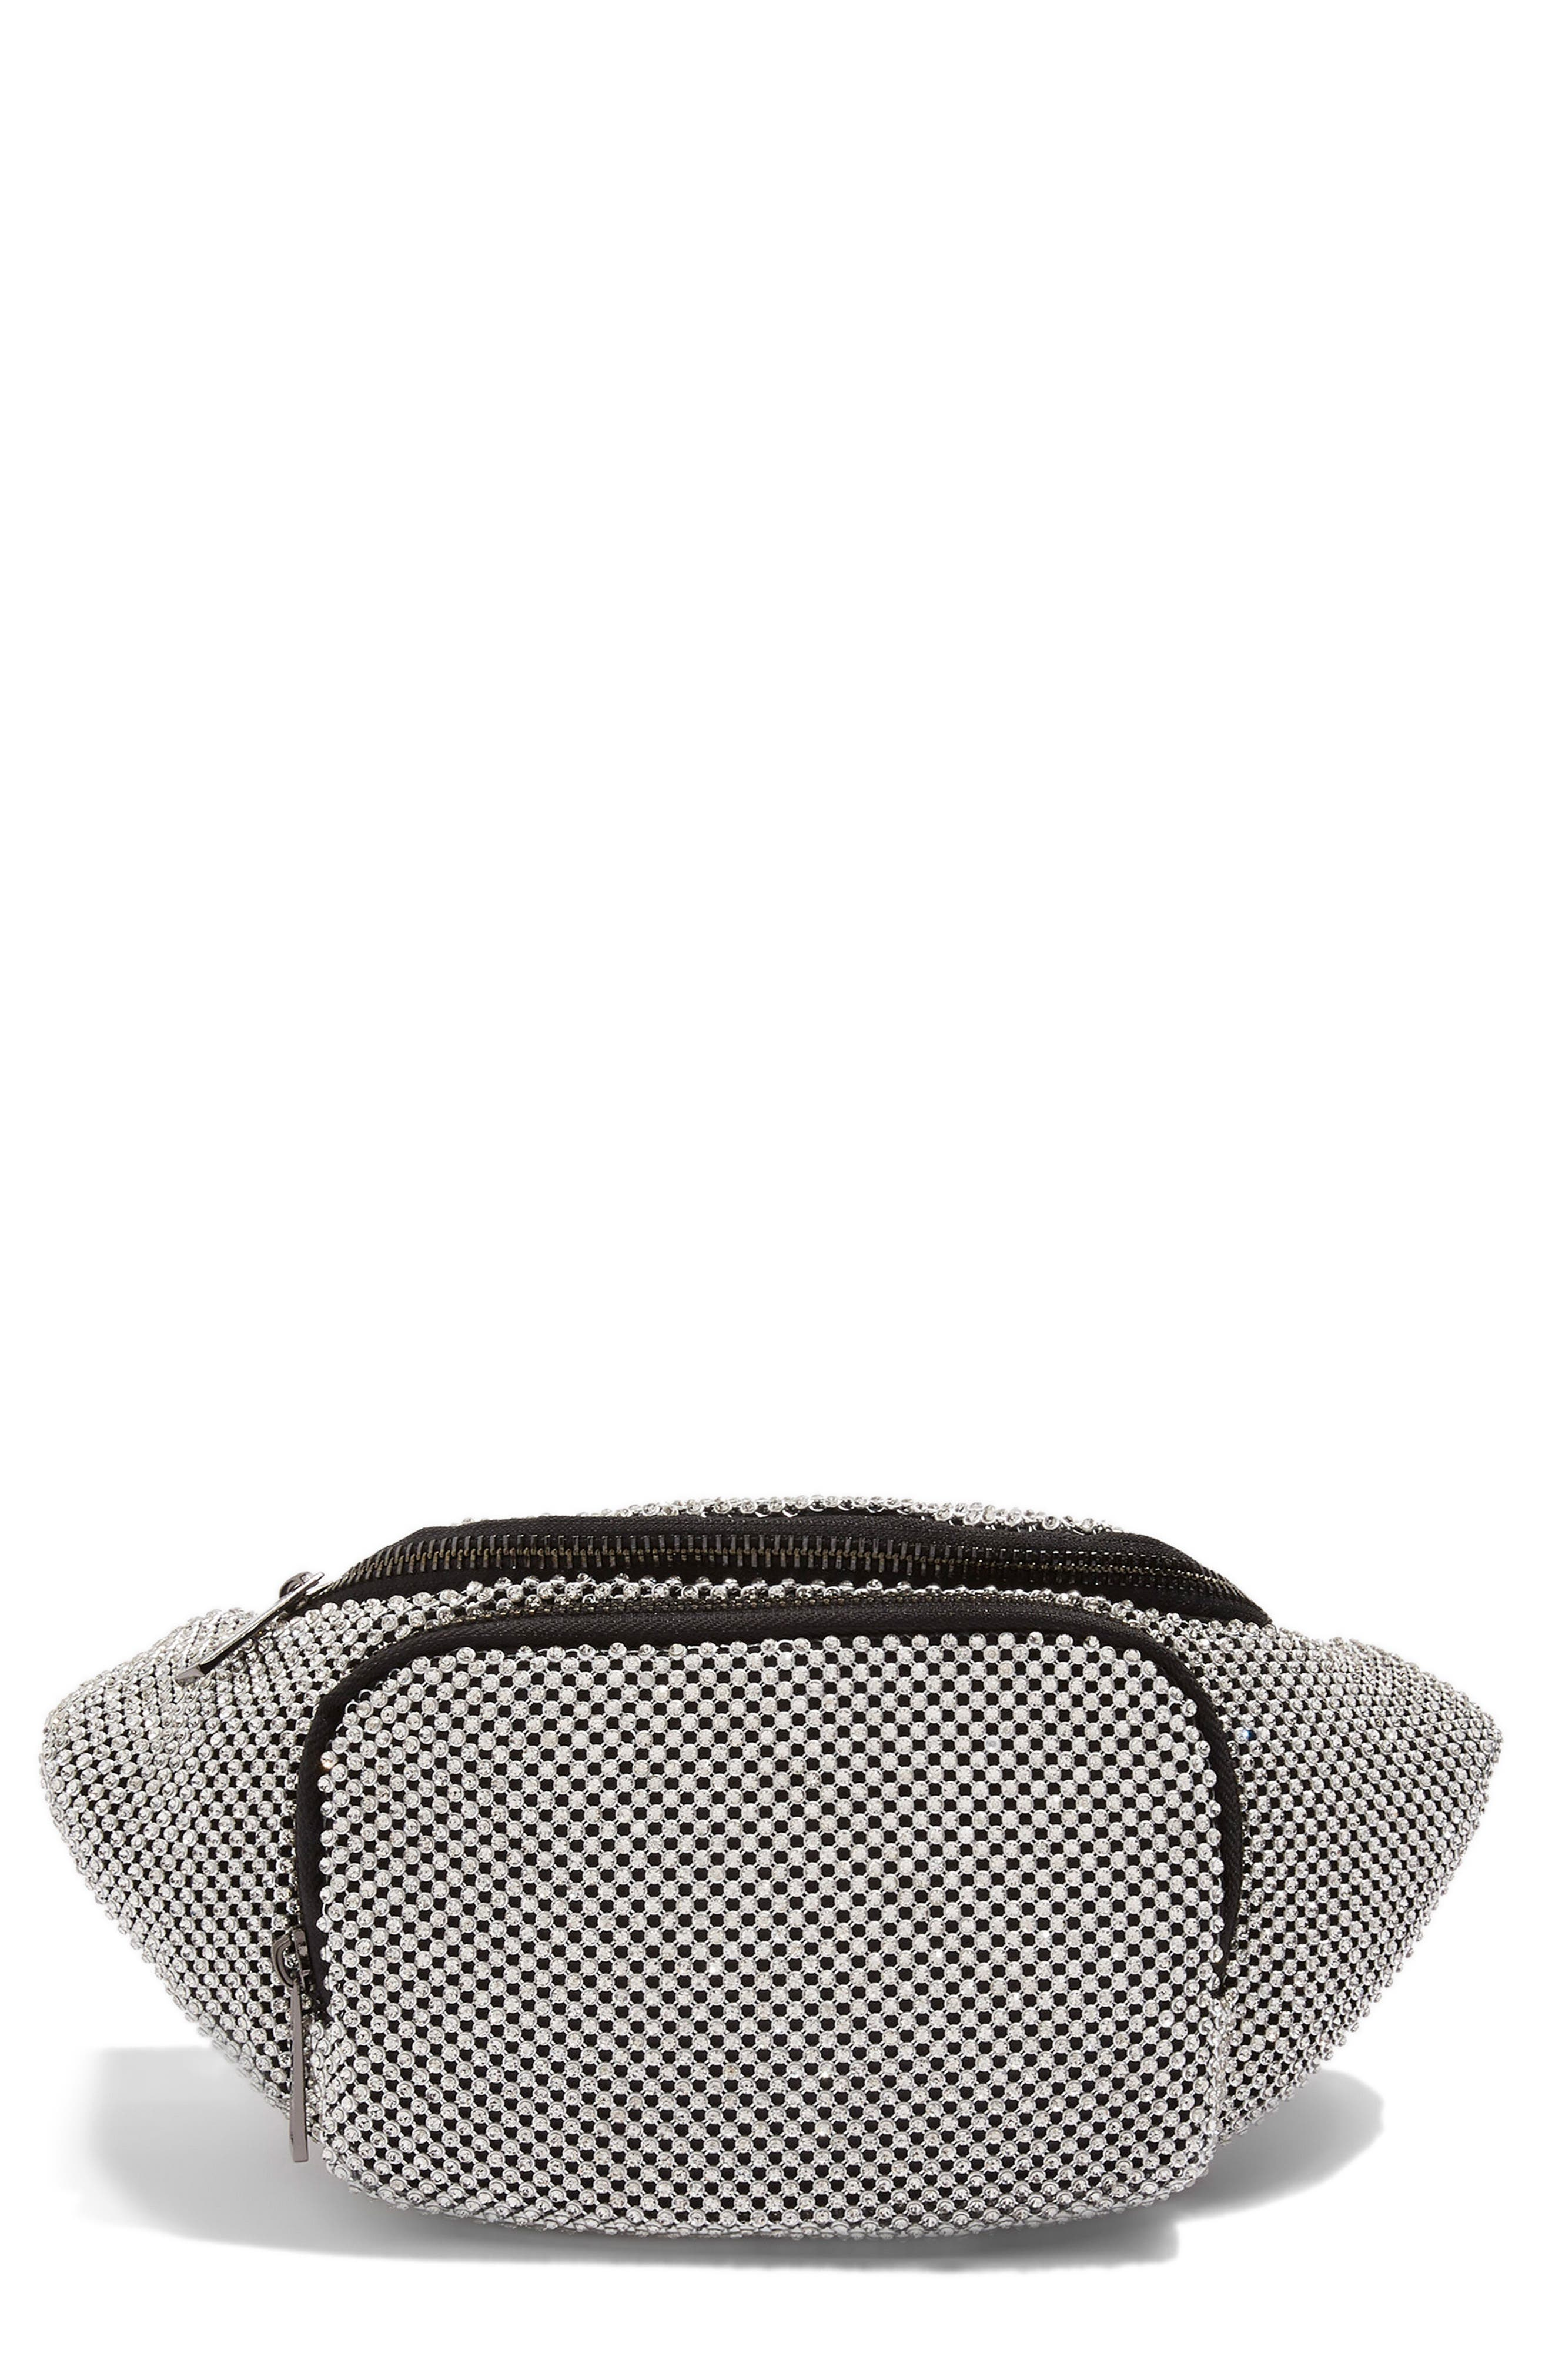 Diana Diamante Chainmail Bum Bag,                             Main thumbnail 1, color,                             Silver Multi